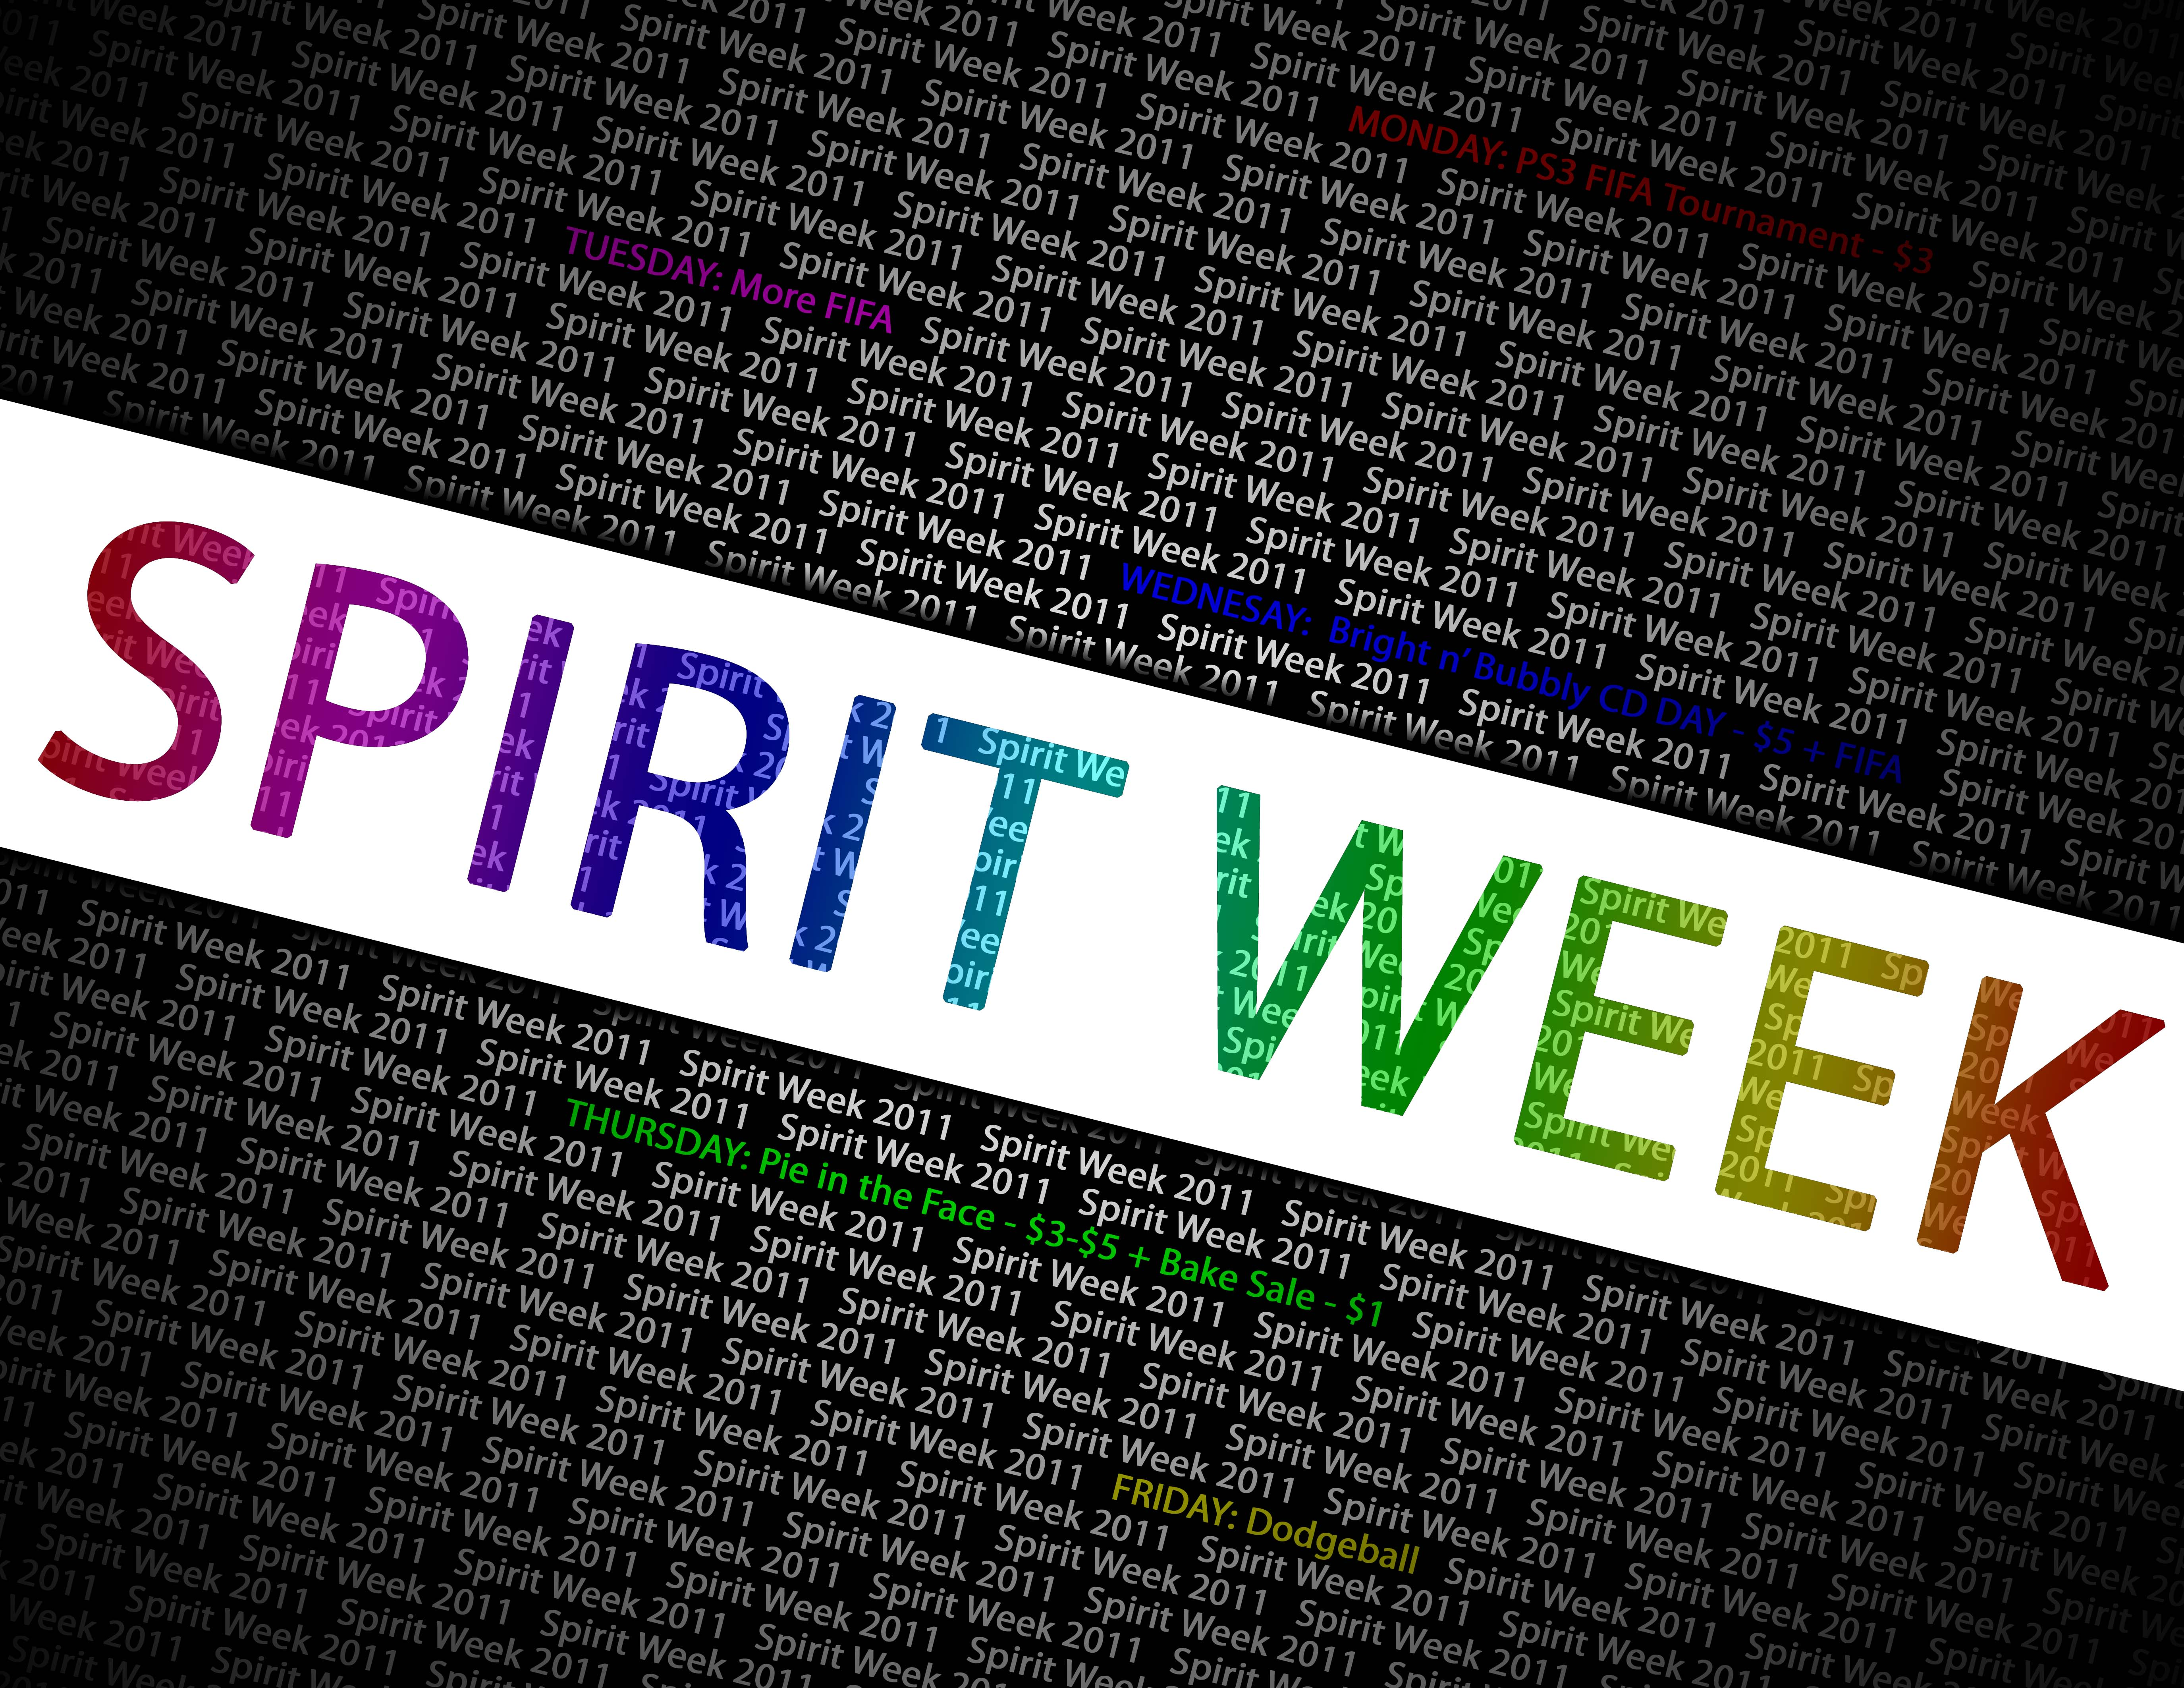 spirit week Spirit week spirit week is held 2-3 times a year: in the fall leading up to homecoming, in the winter during the last week of january, and in the spring prior to spring break.